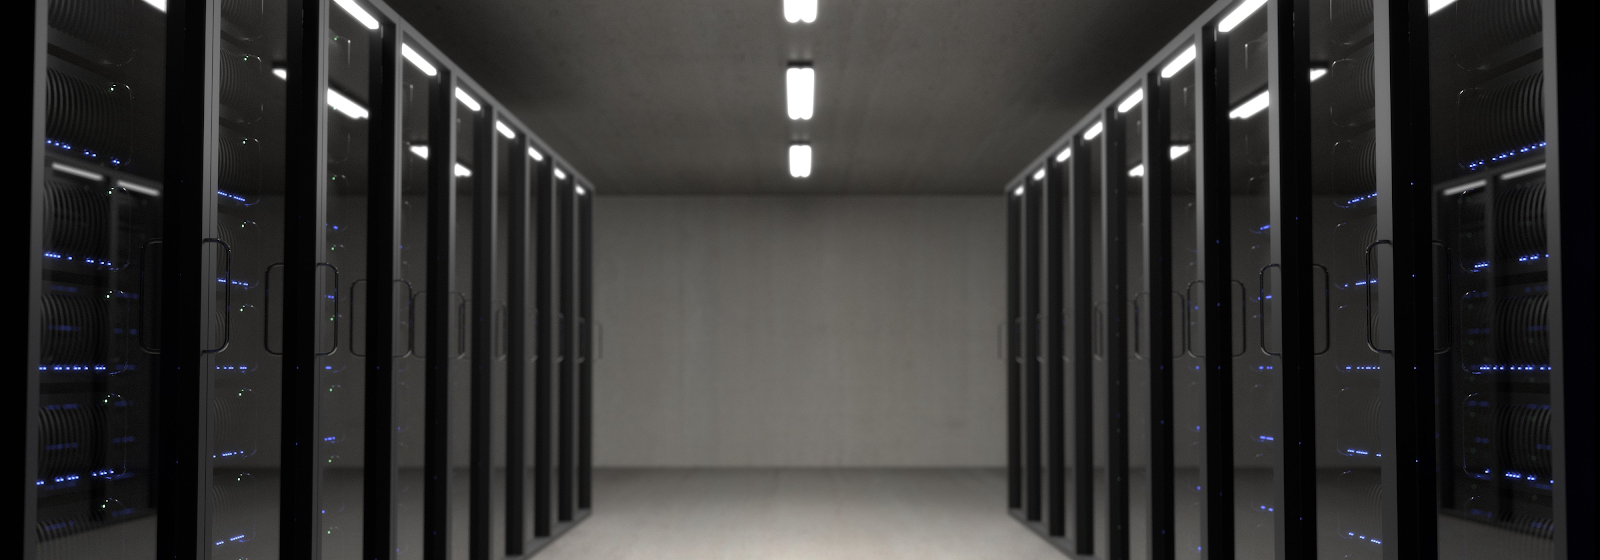 Hallway with two rows of black data processors